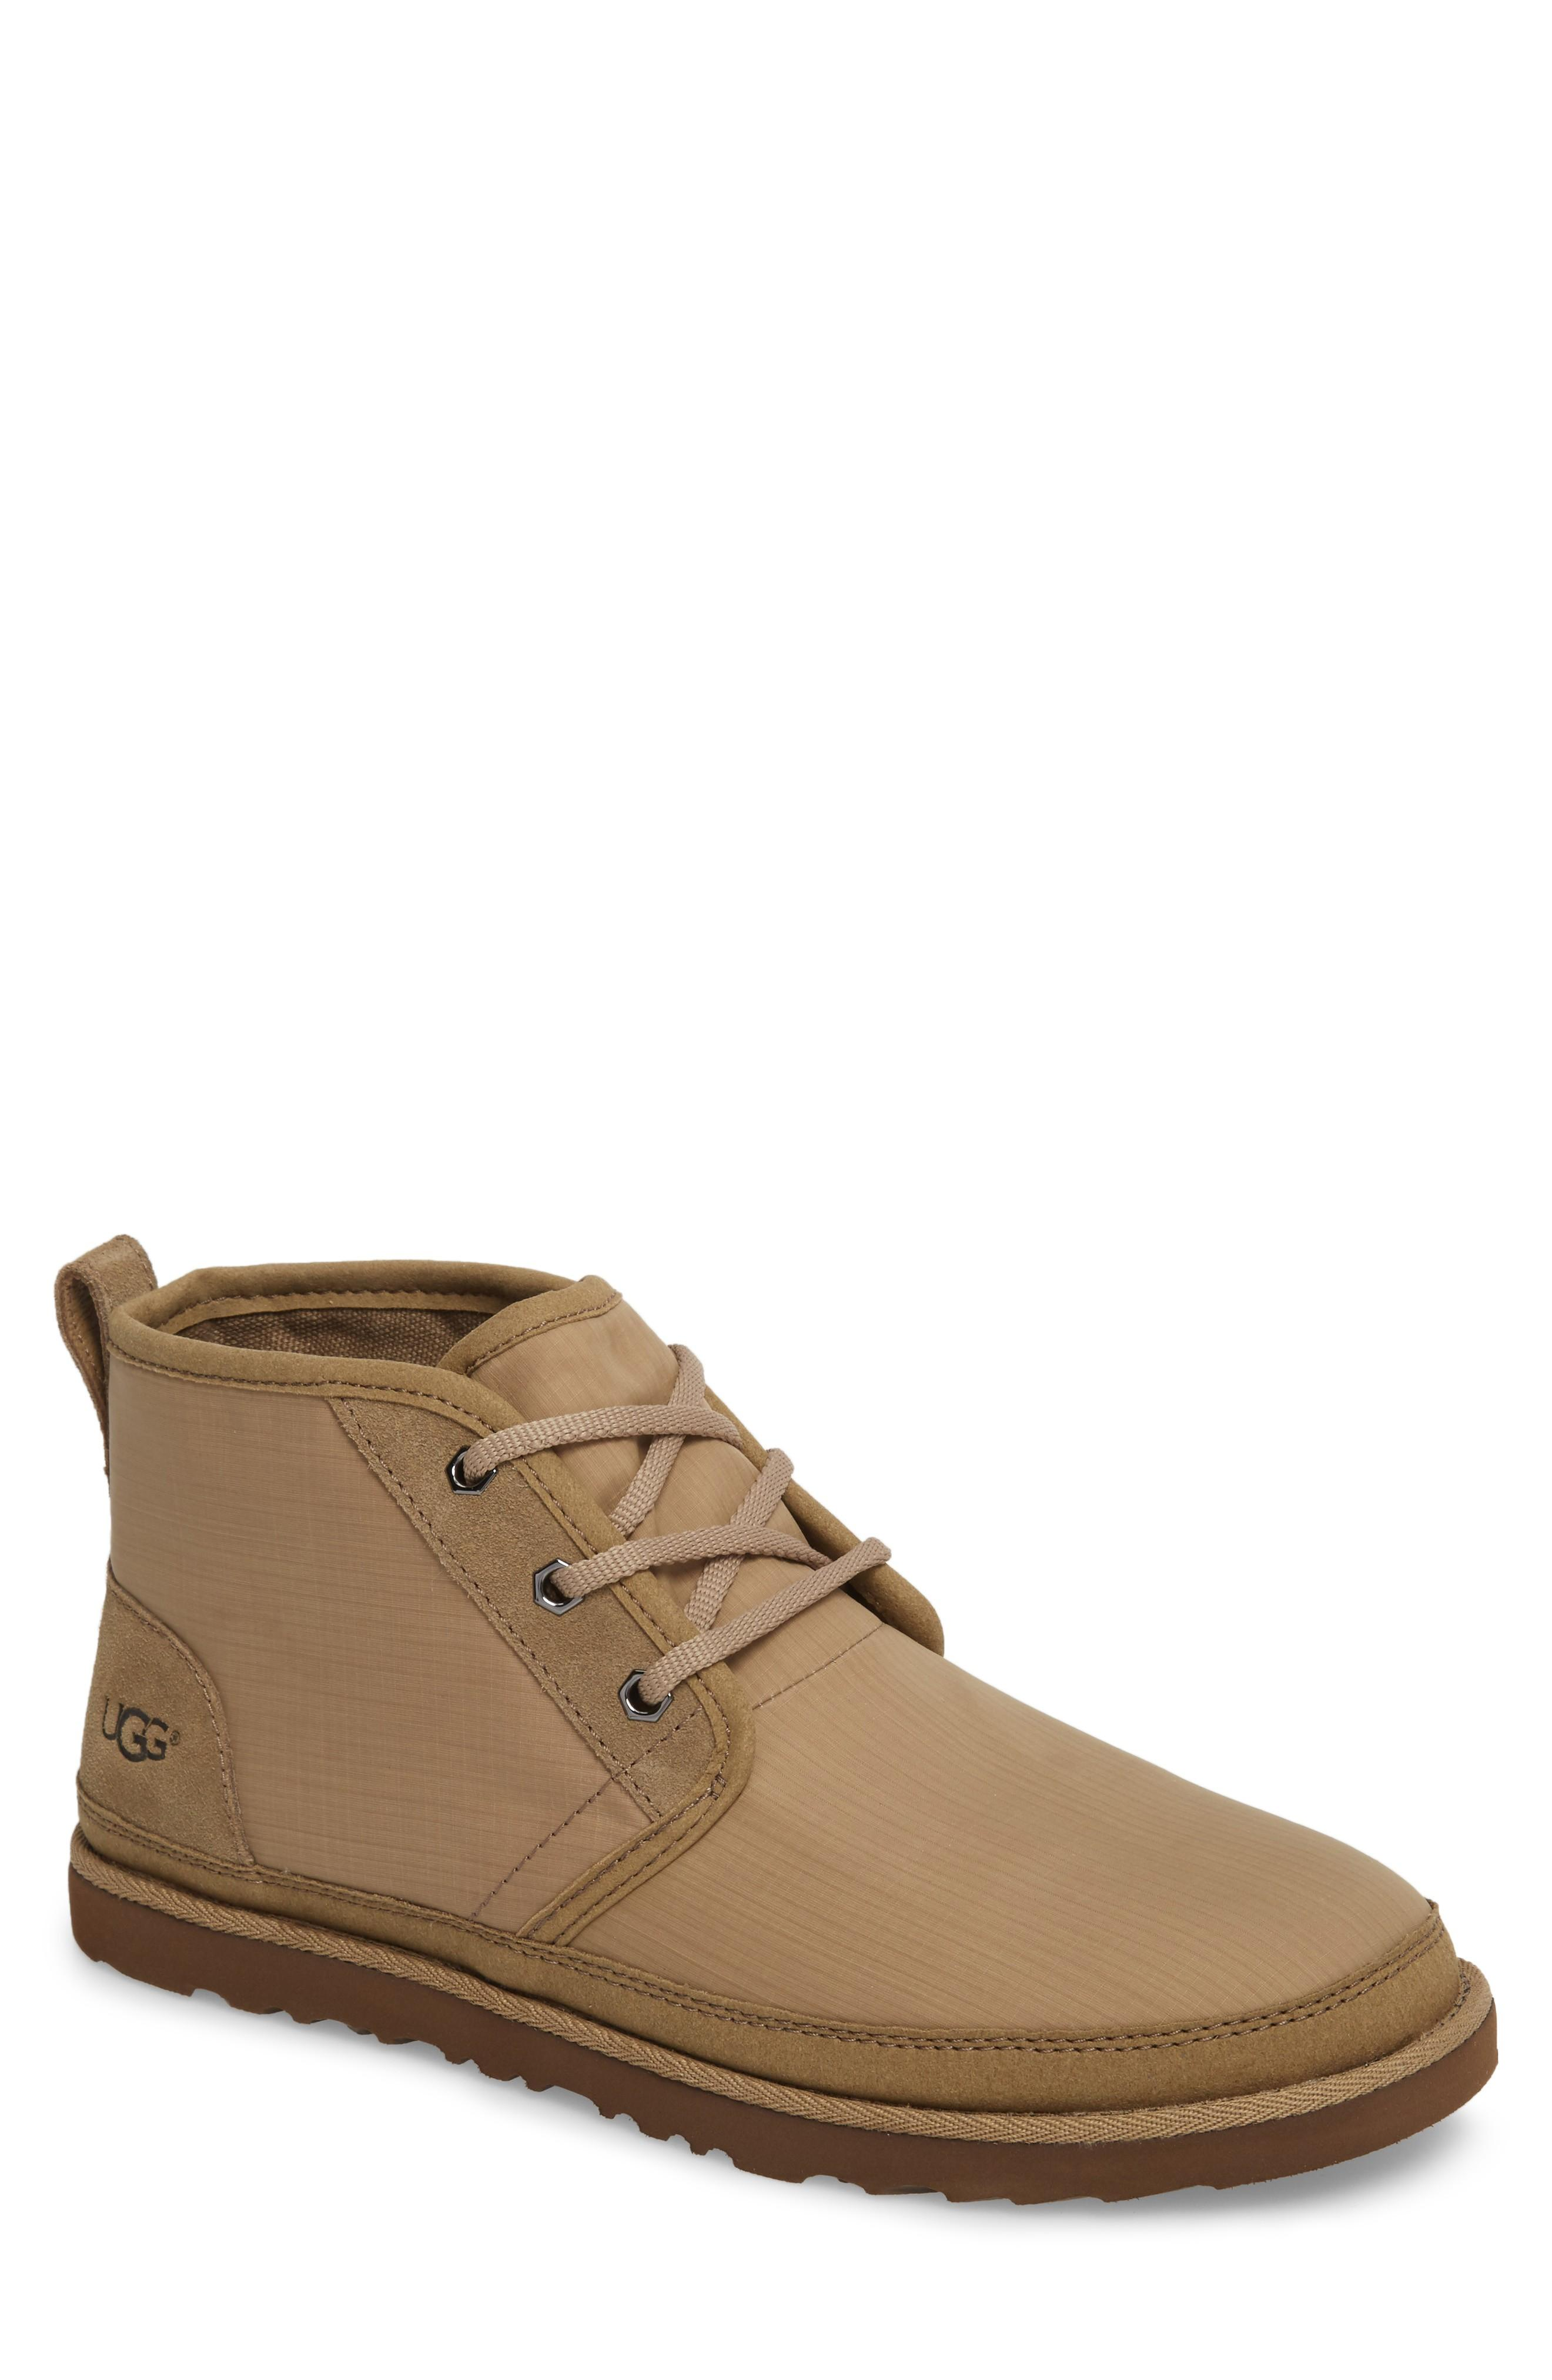 5f0af07dee8 Ugg Neumel Ripstop Chukka Boot In Antilope Leather | ModeSens